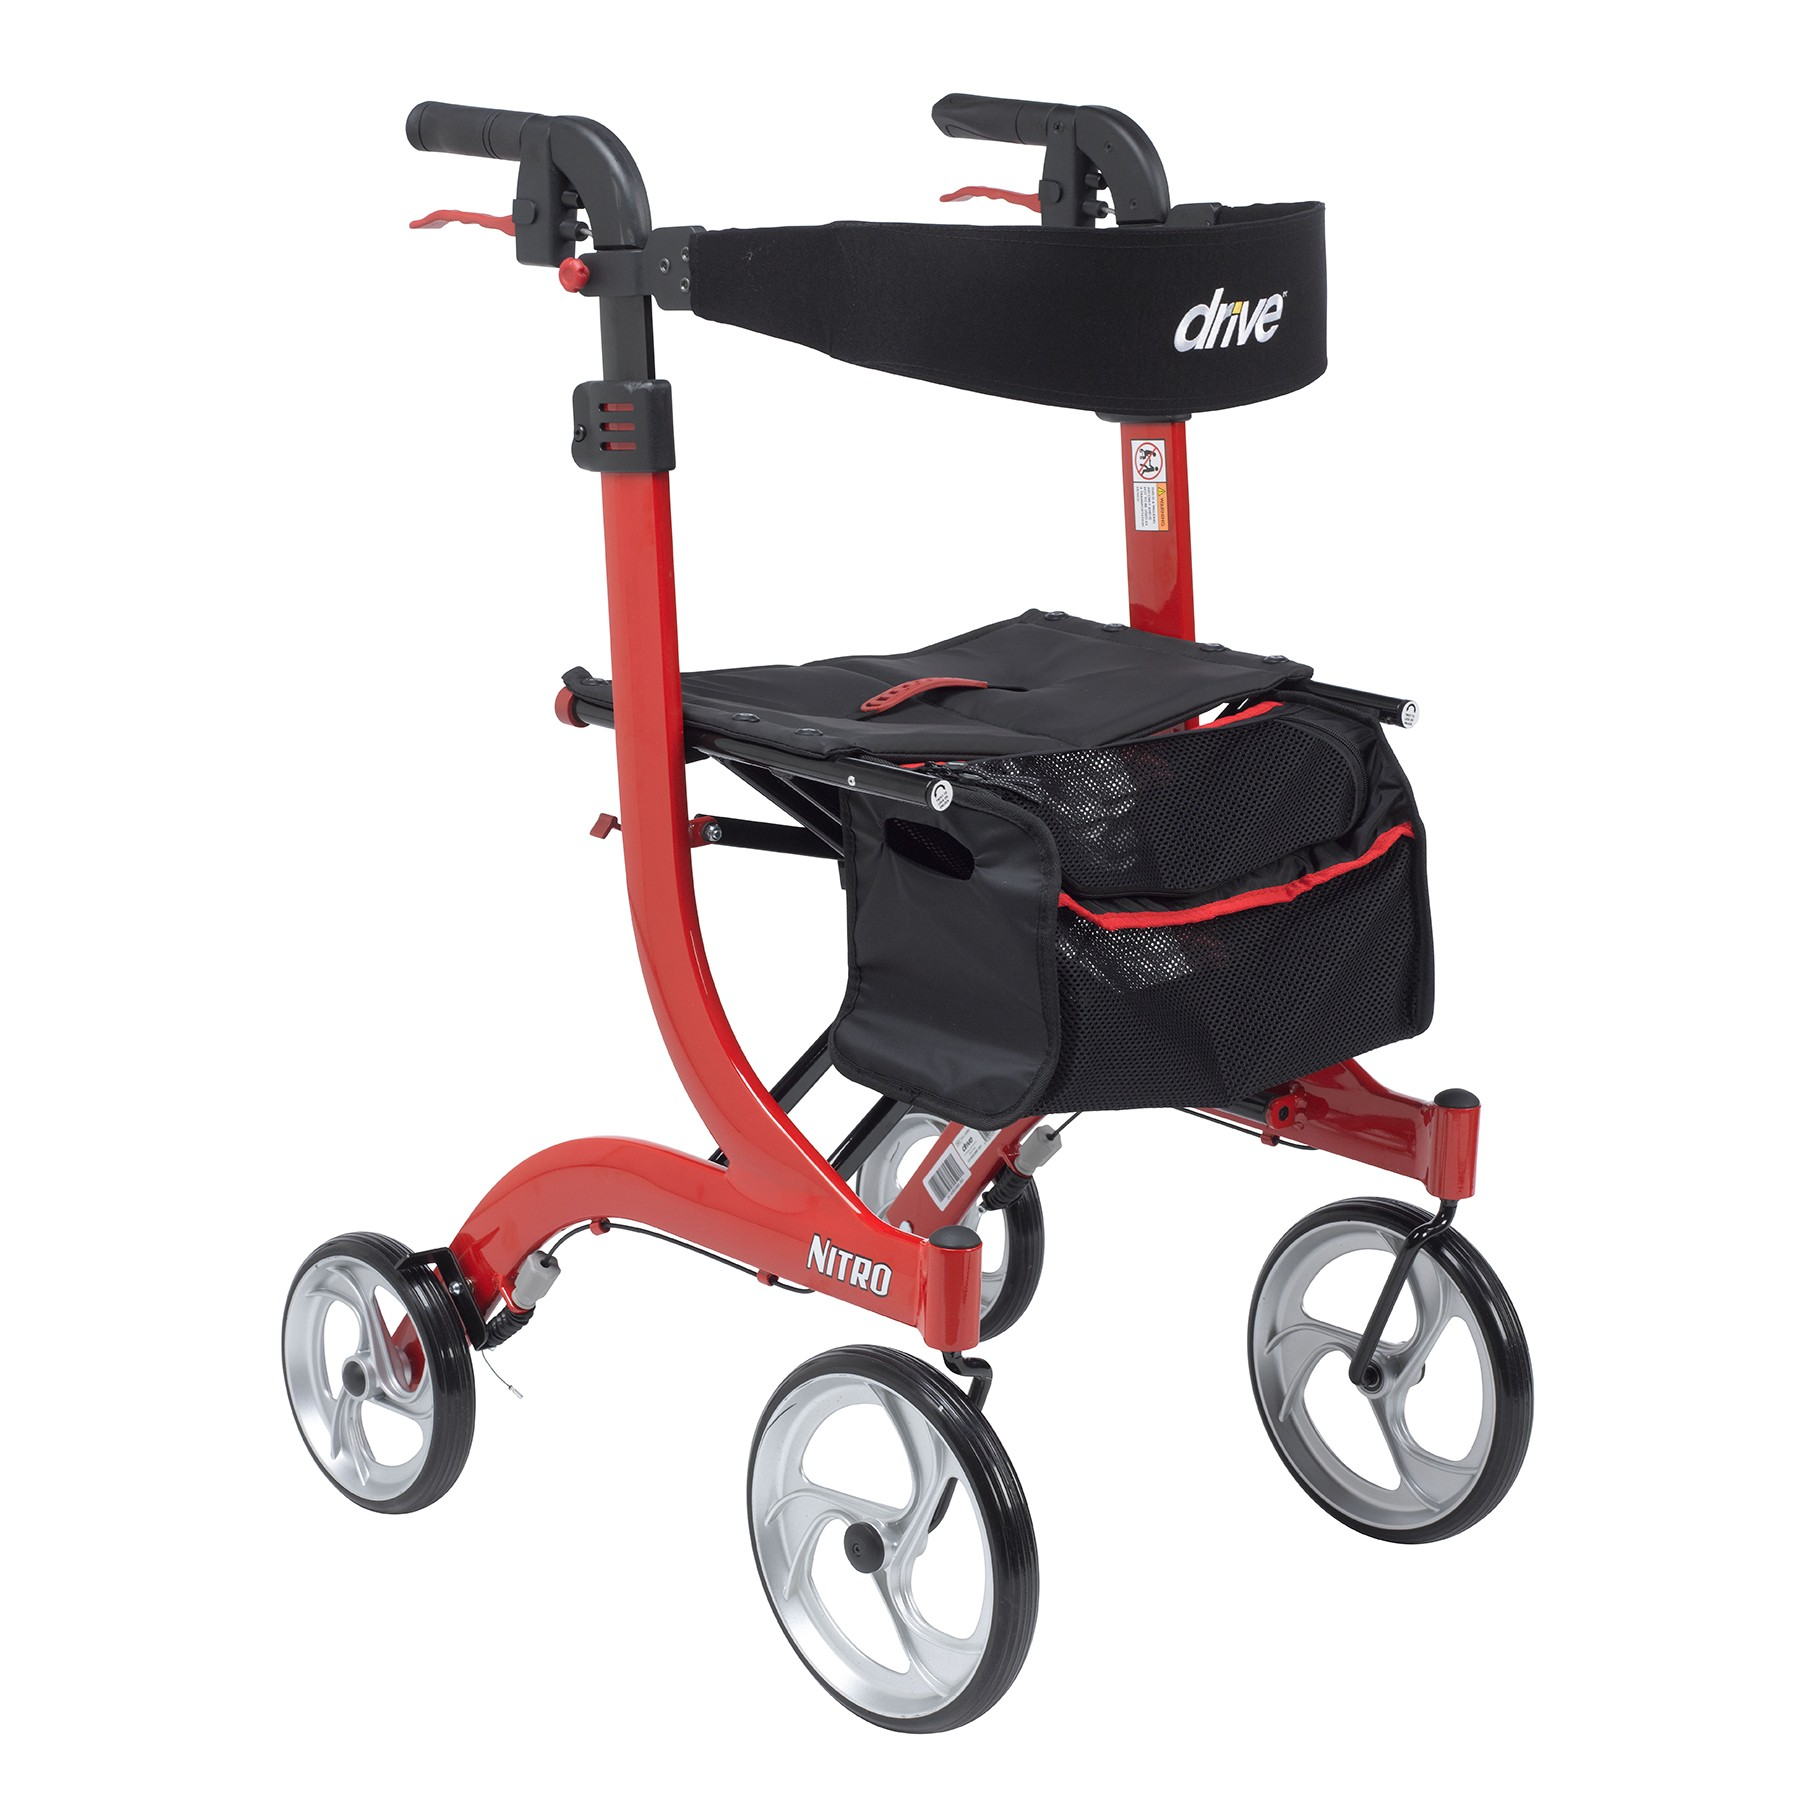 Nitro Aluminum Rollator, Tall Height, 10